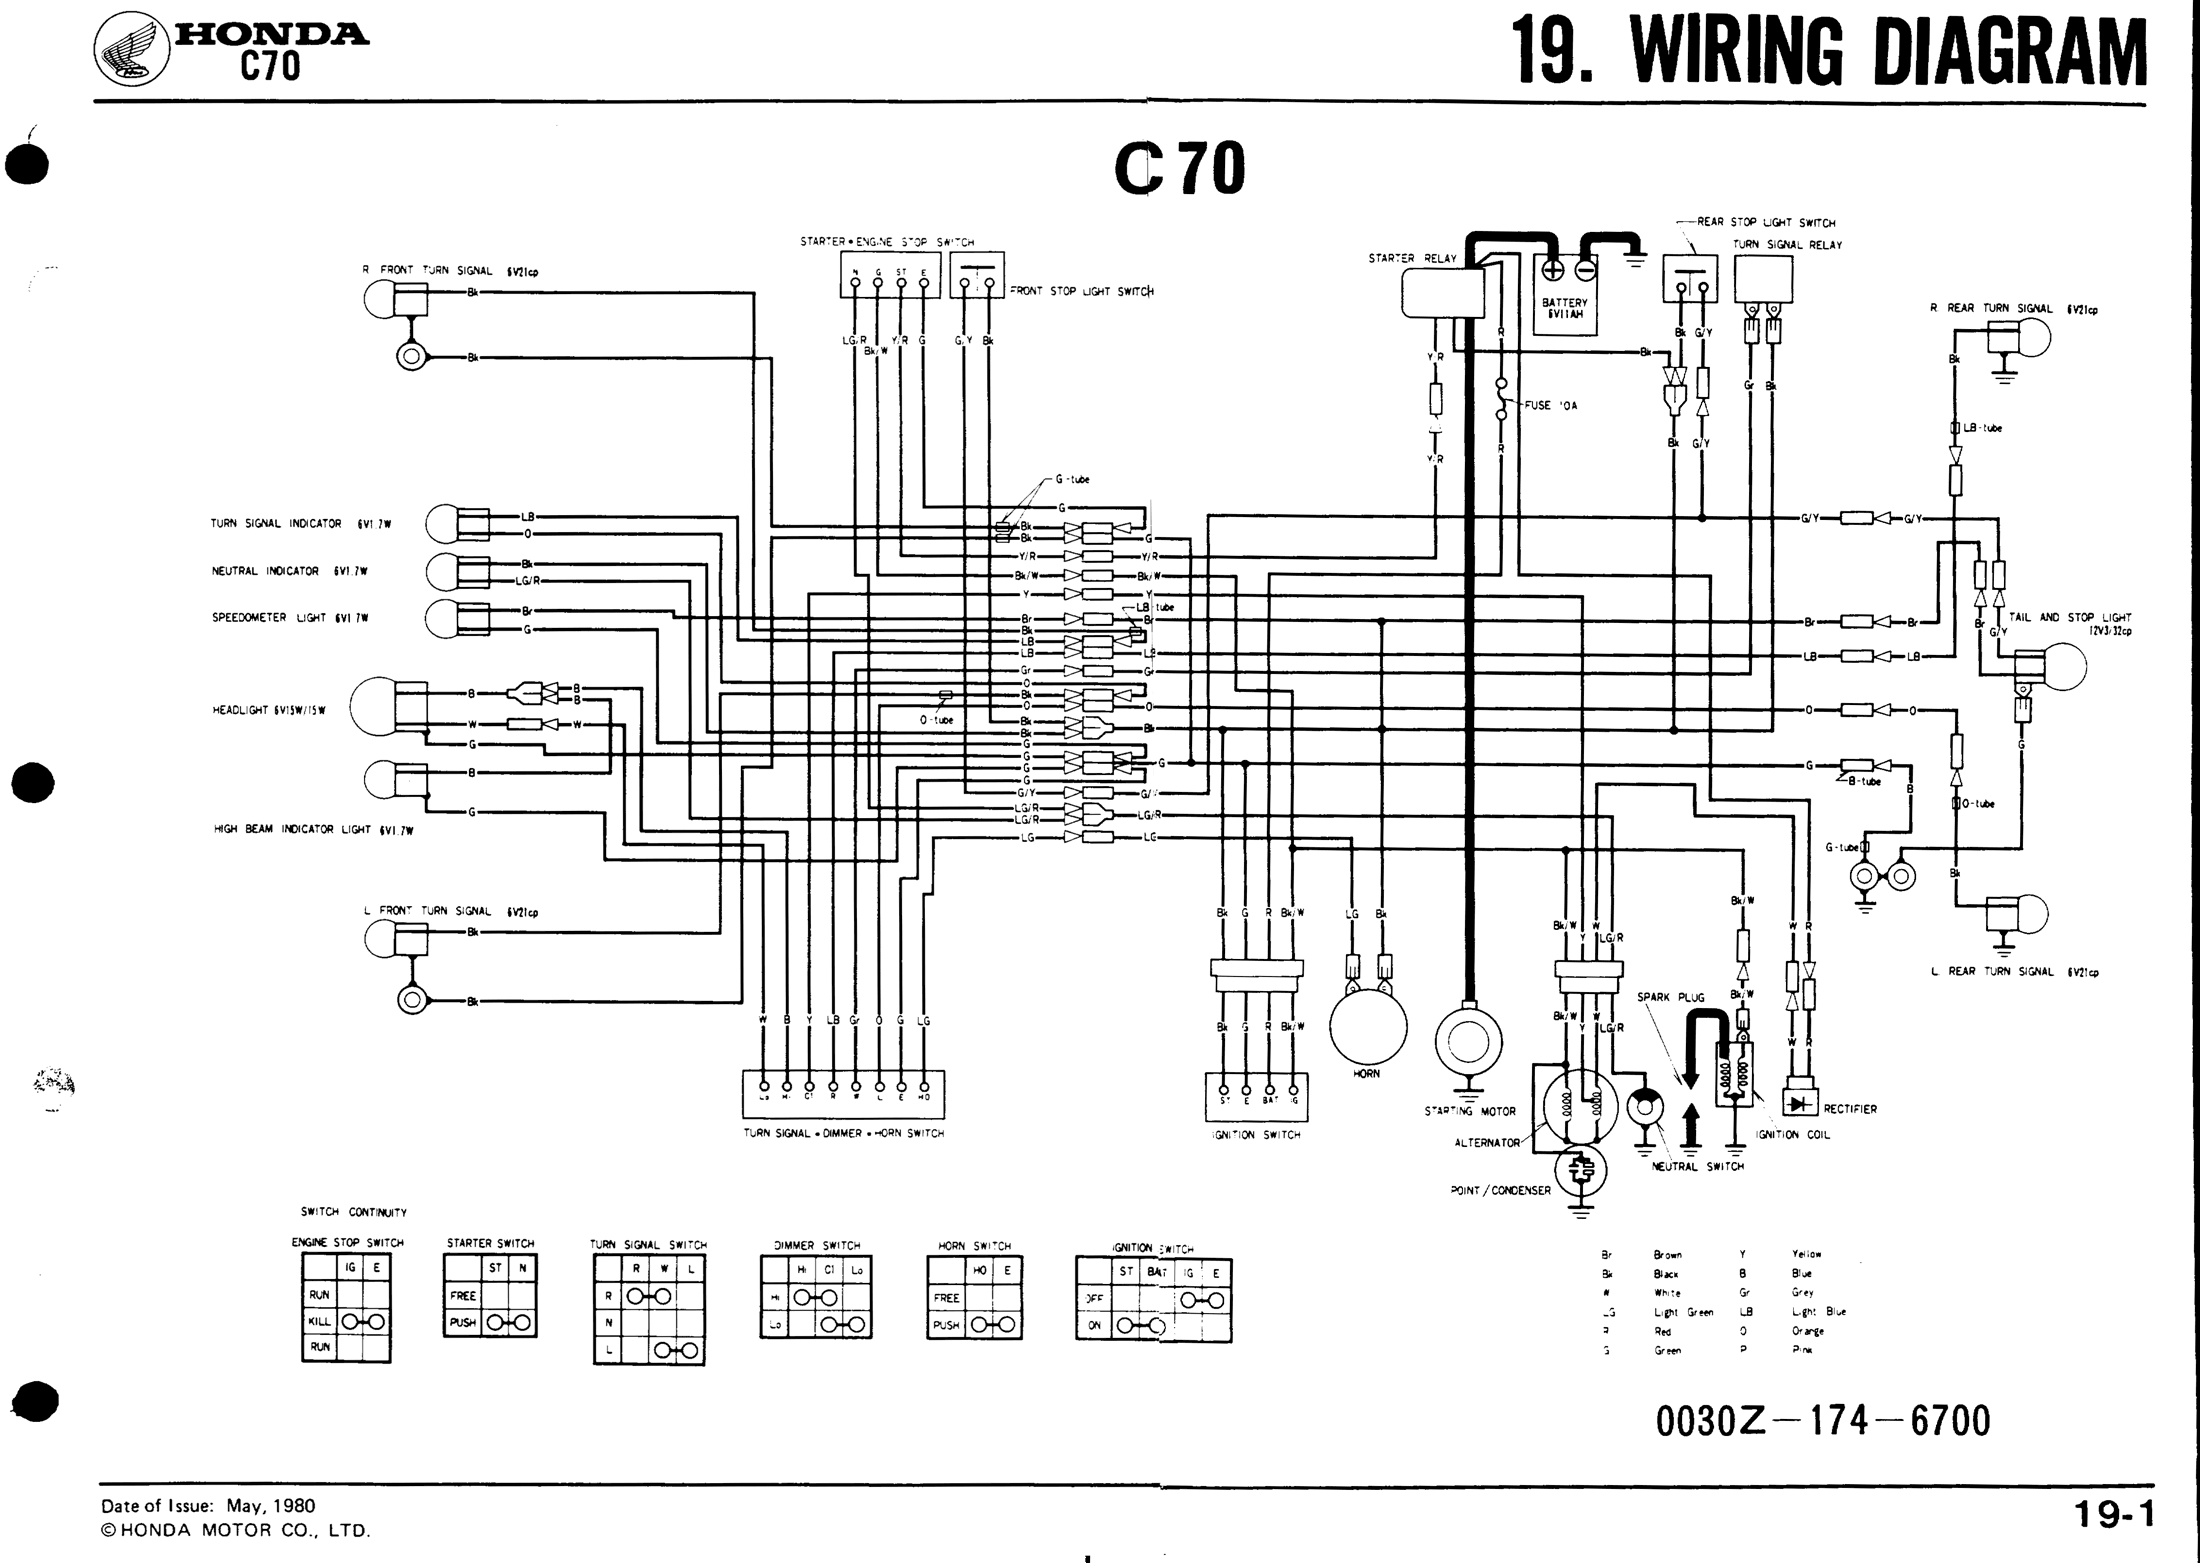 1985 C70 Wiring Diagram | Wiring Diagrams Xl Wiring Diagram on